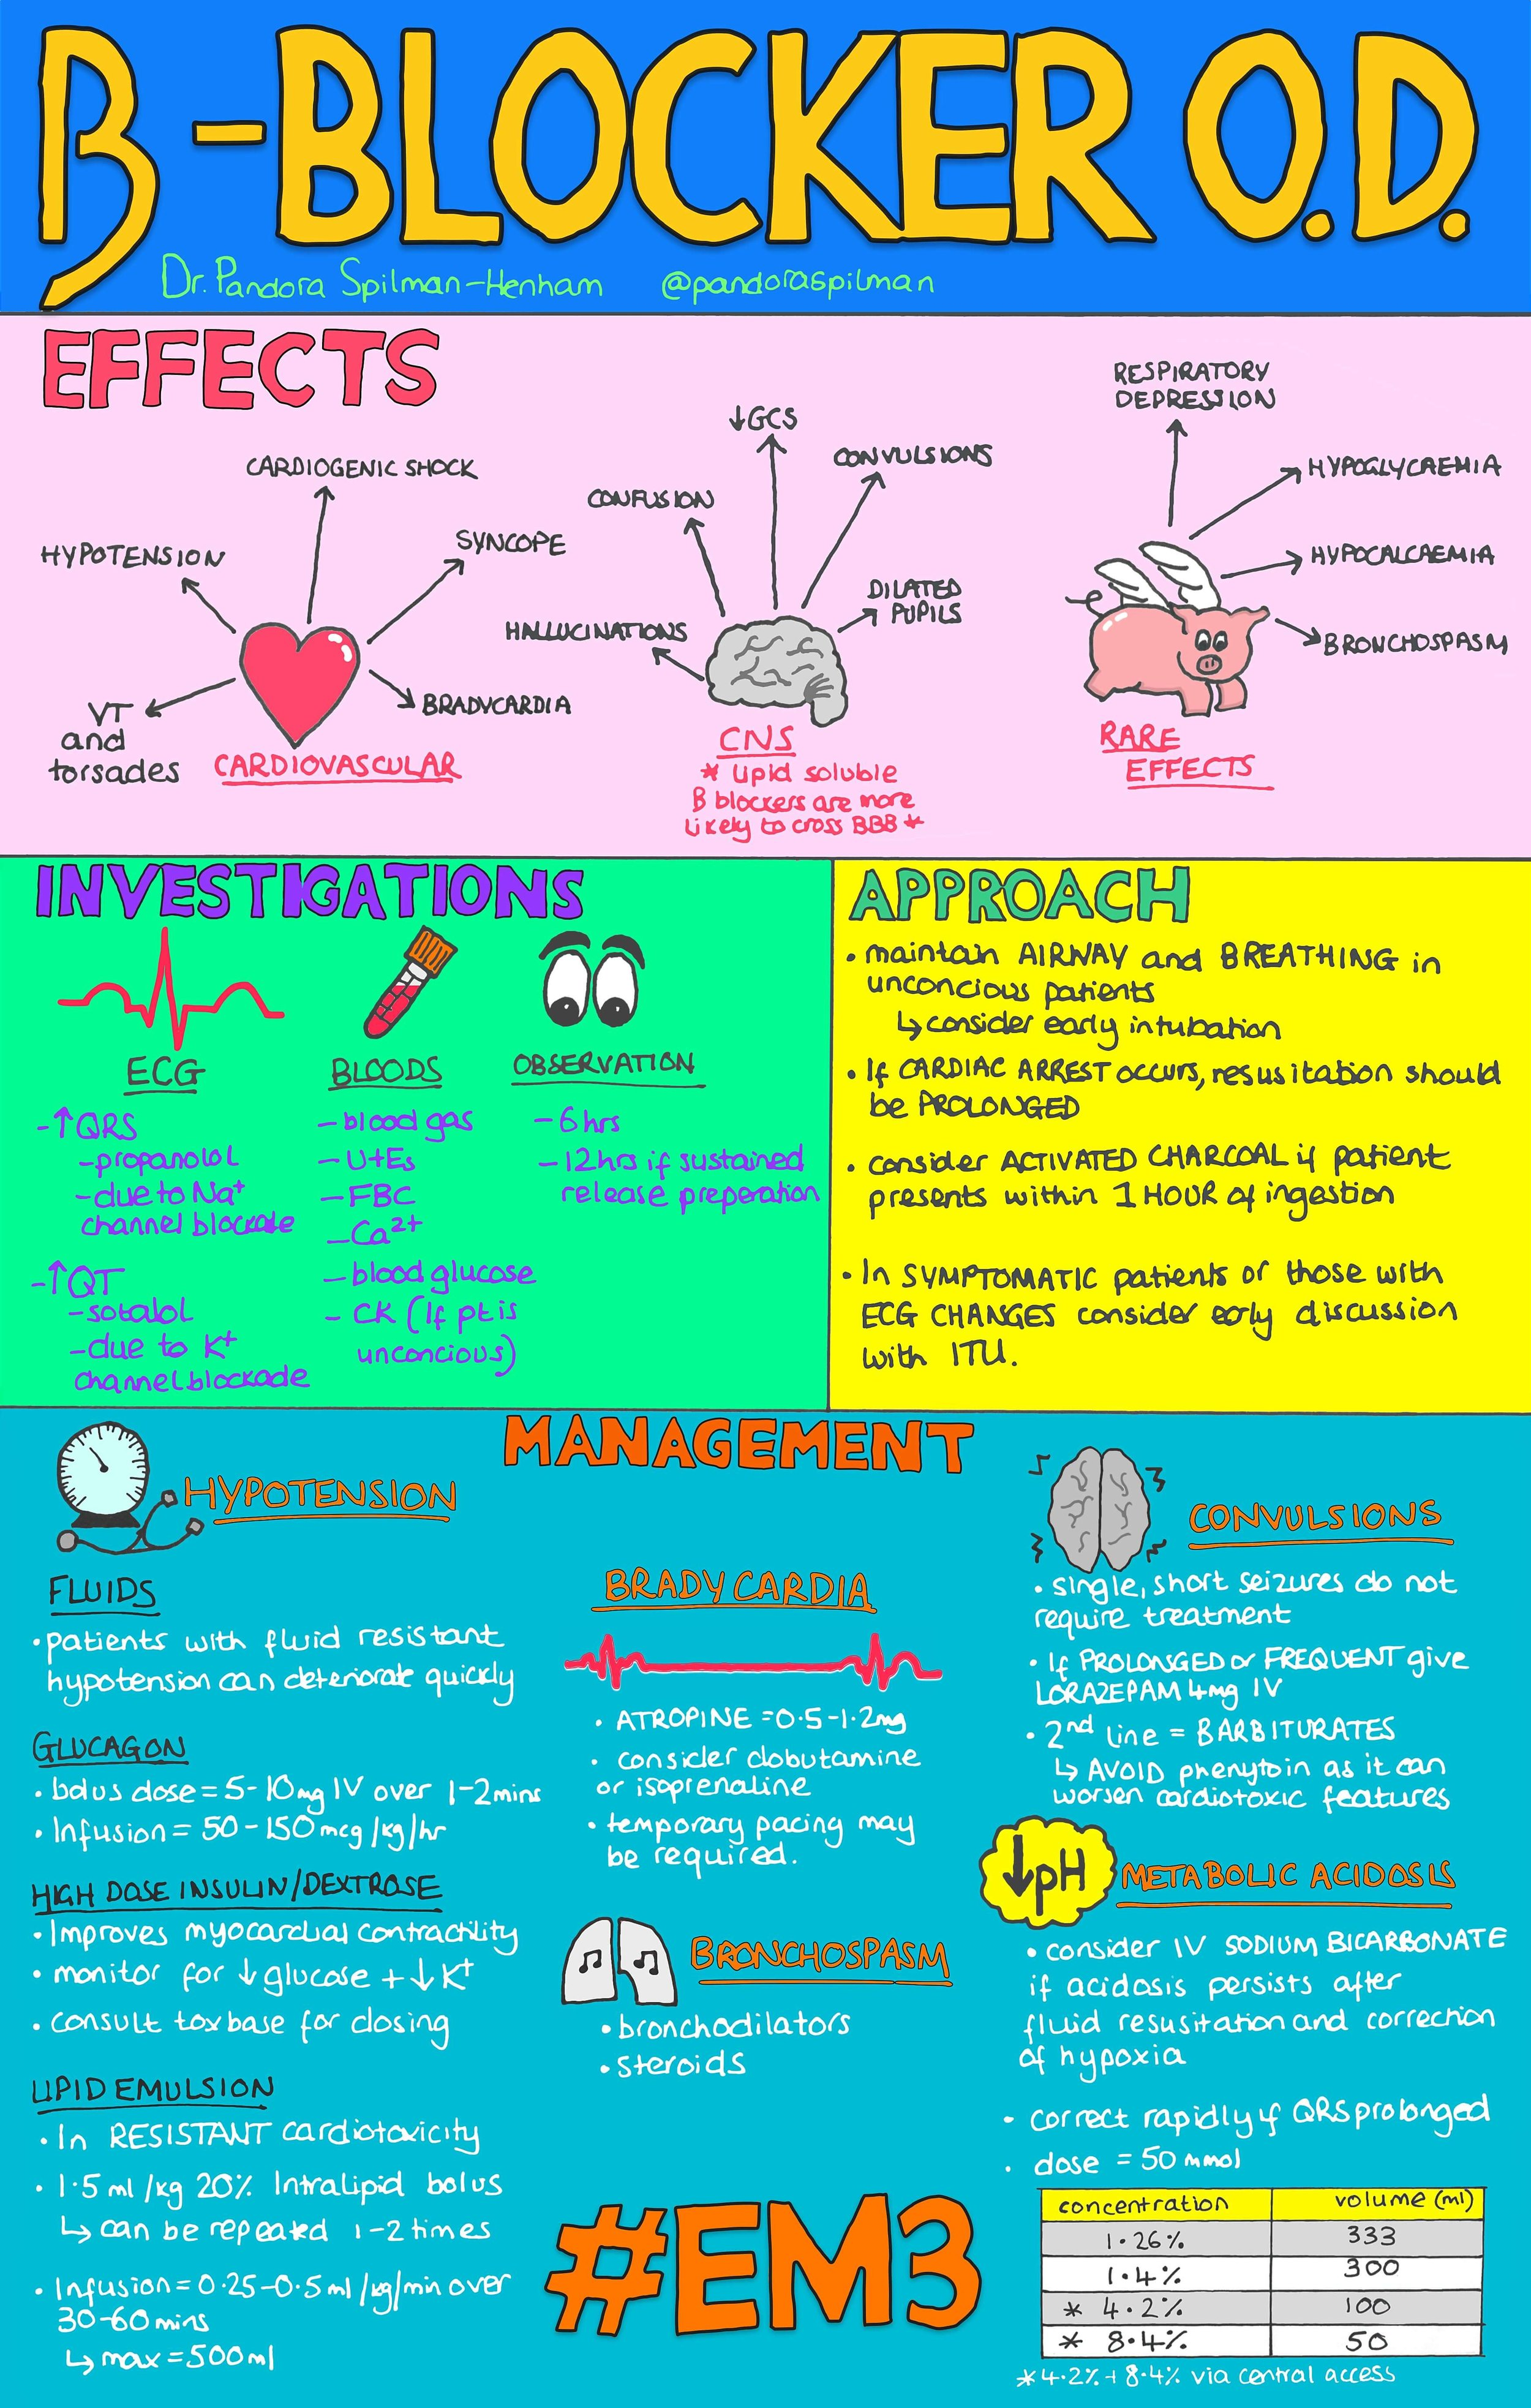 Beta Blocker OD infographic.jpg